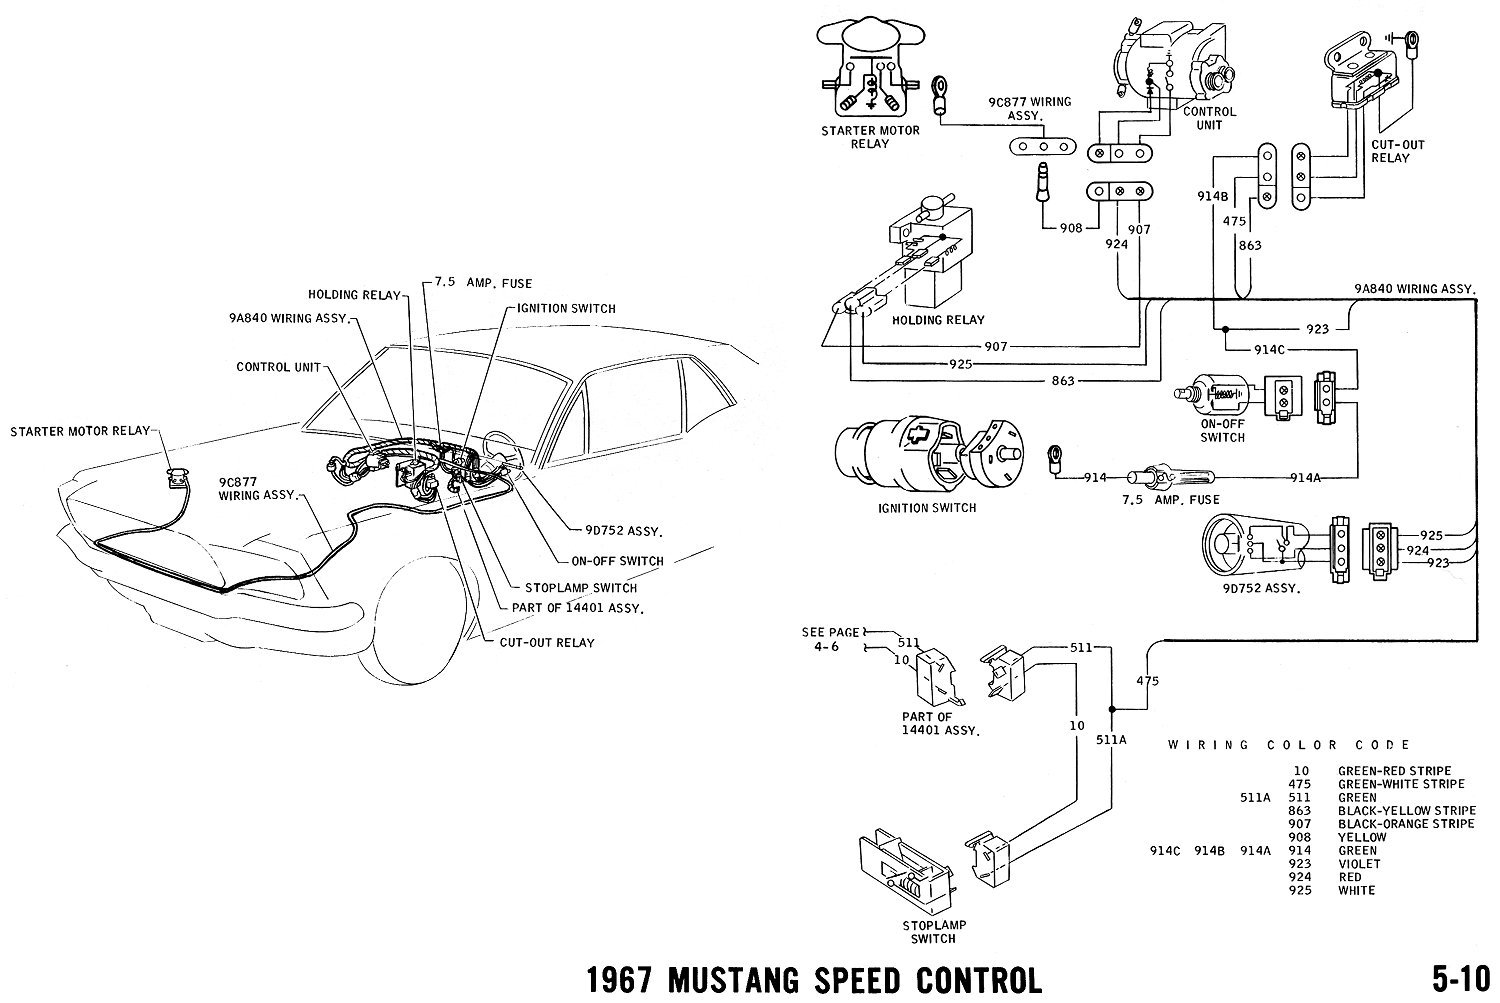 1967 mustang wiring and vacuum diagrams average joe 1970 Mustang Wiring Harness 2007 Mustang Wiring Harness Diagram